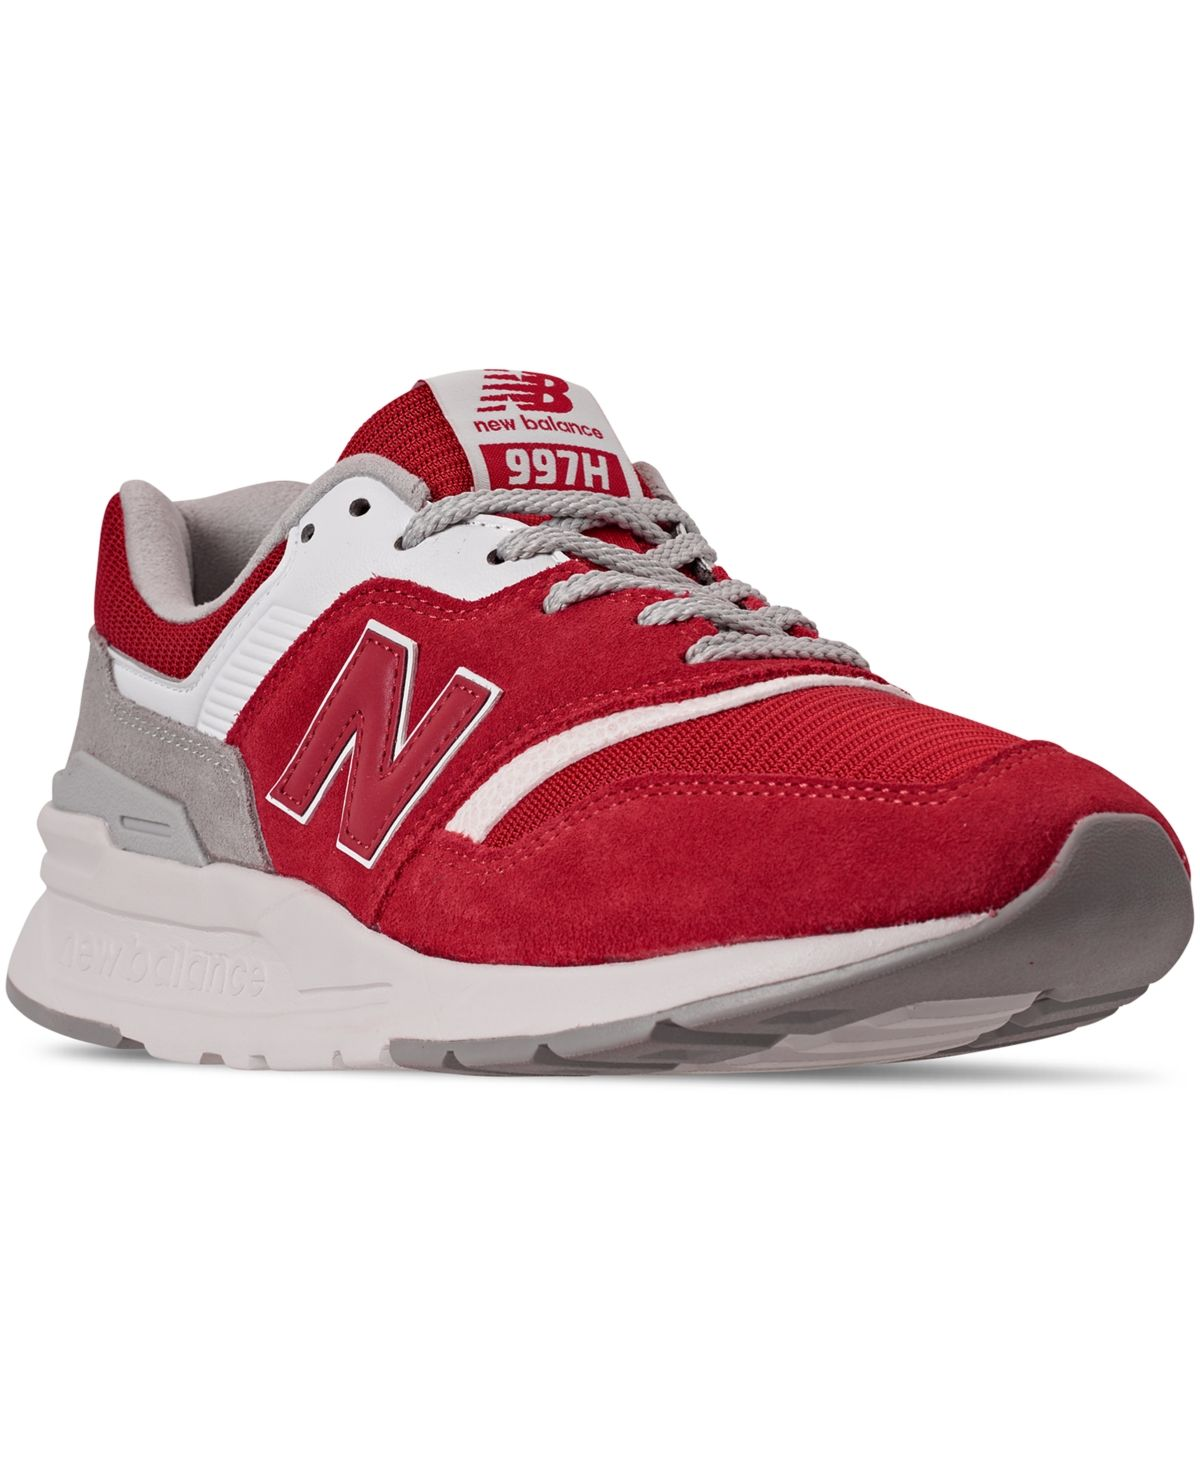 New Balance Men's 997 Americana Casual Sneakers from